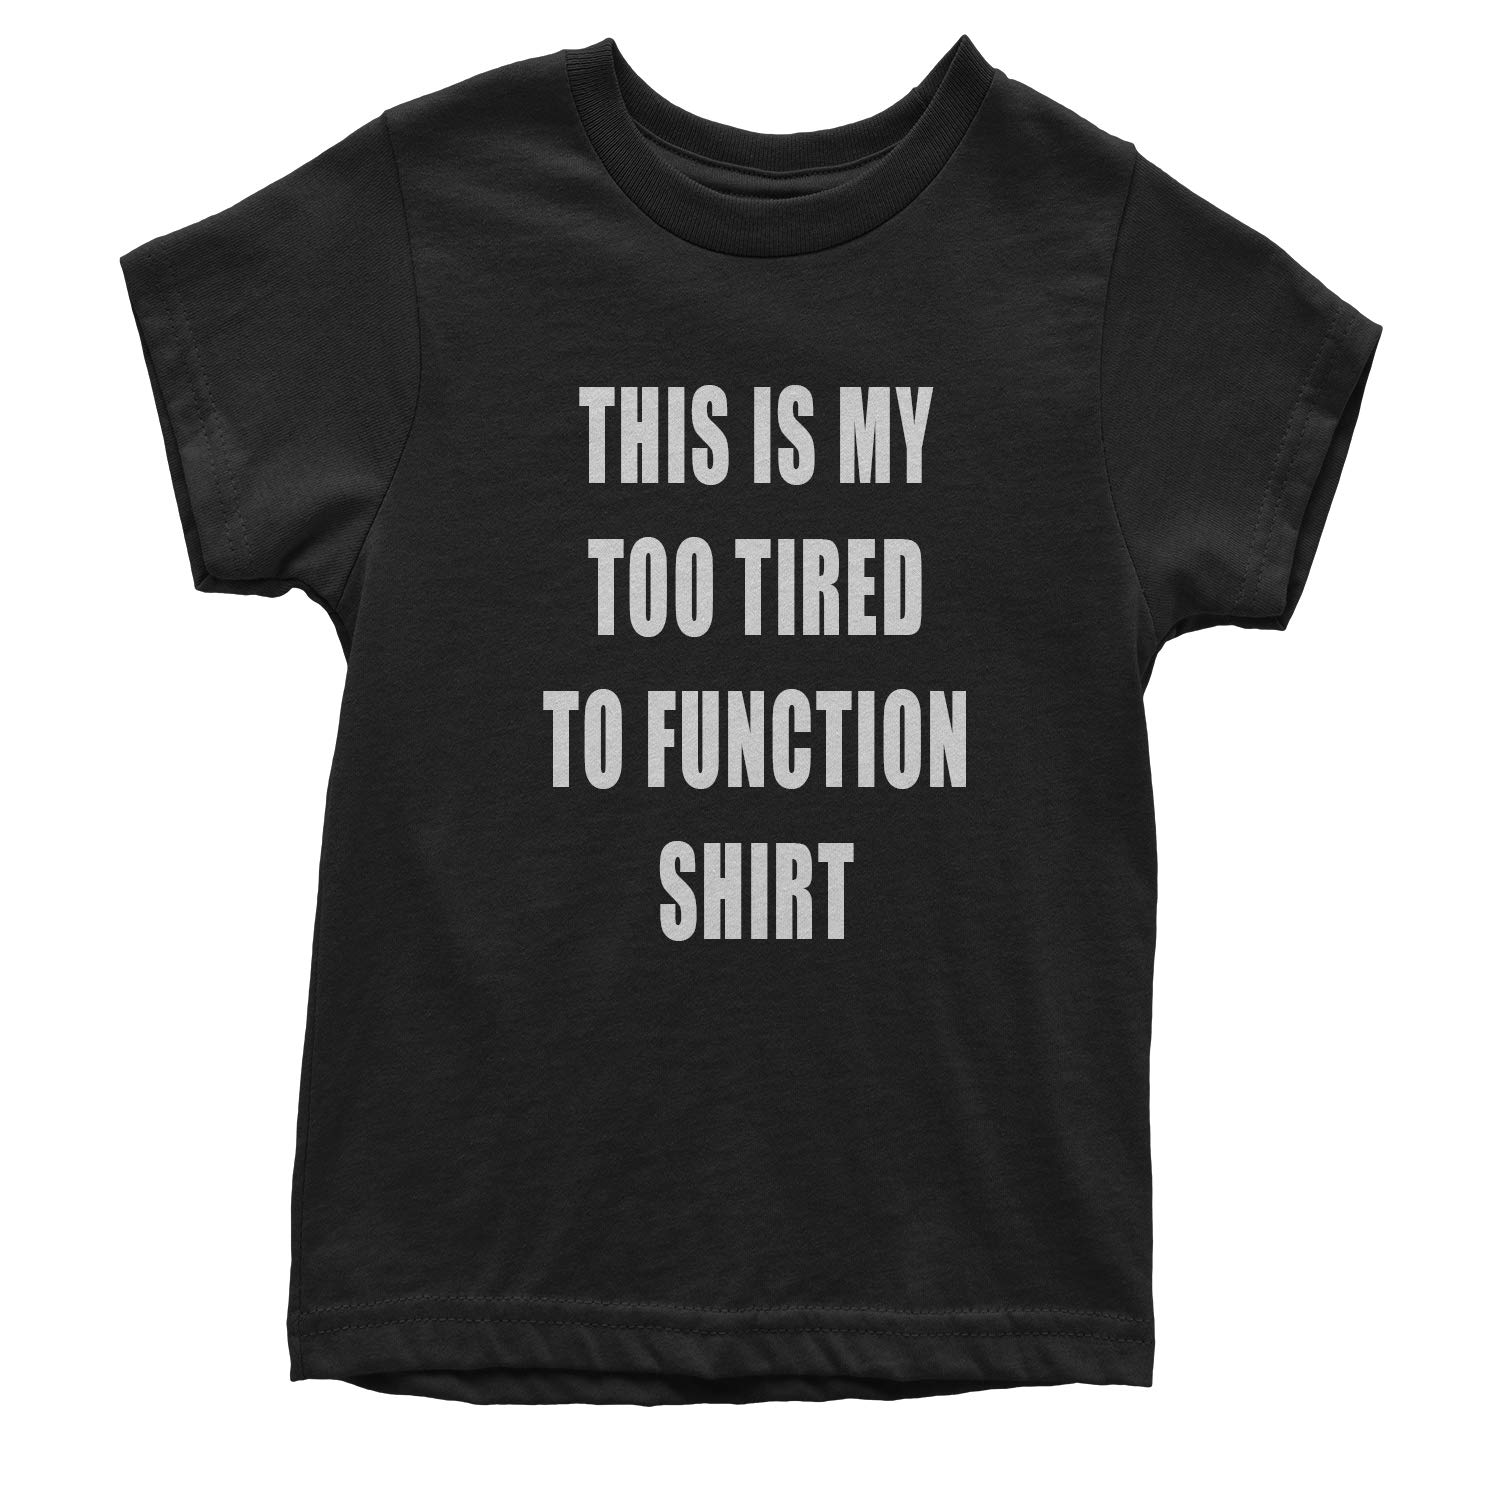 Motivated Culture This is My Too Tired to Function Shirt Youth T-Shirt